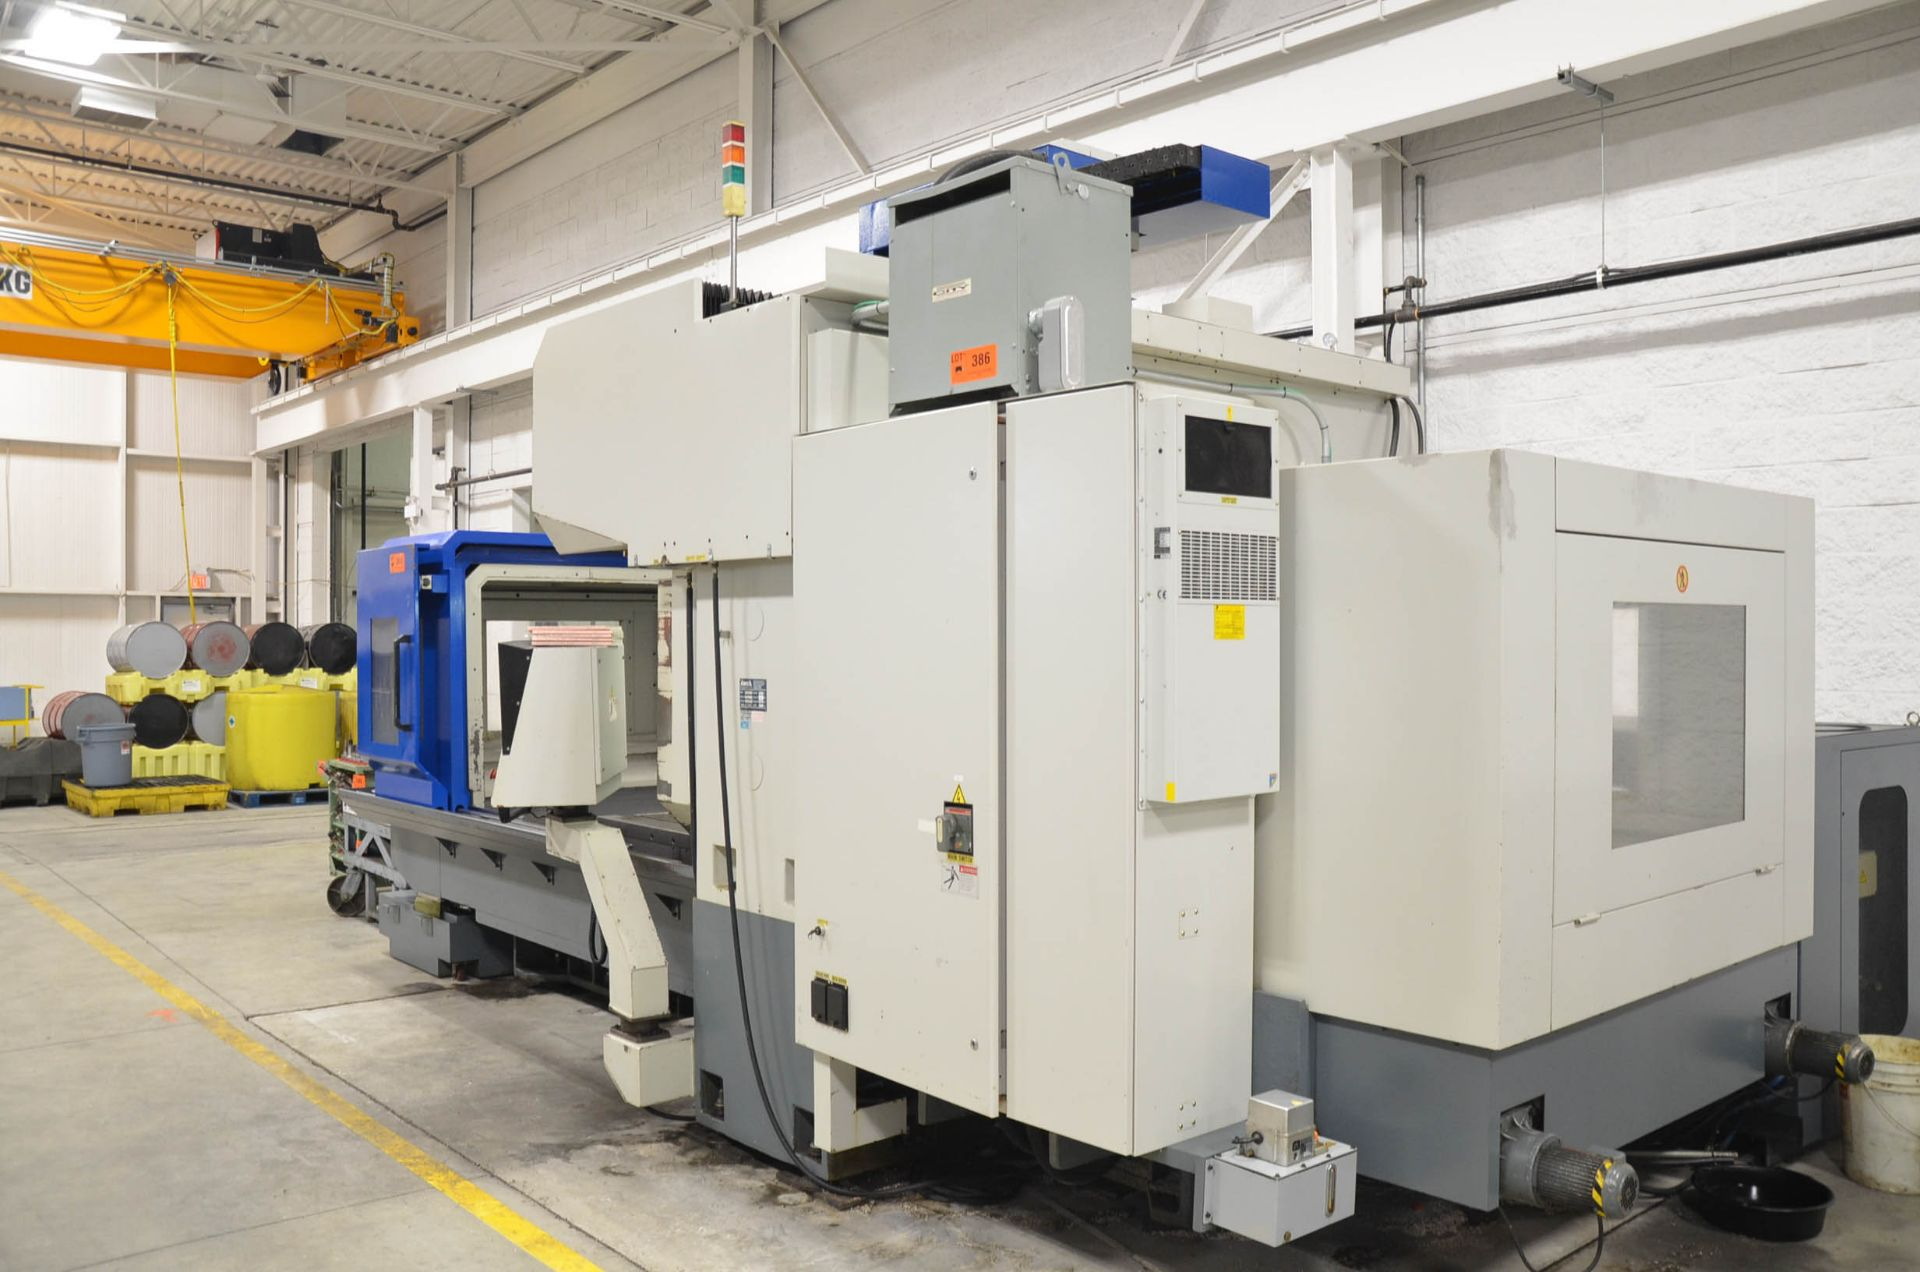 AWEA (2005) SP2016HSS GANTRY-TYPE CNC VERTICAL MACHINING CENTER WITH FANUC SERIES 18I-MB CNC - Image 4 of 11